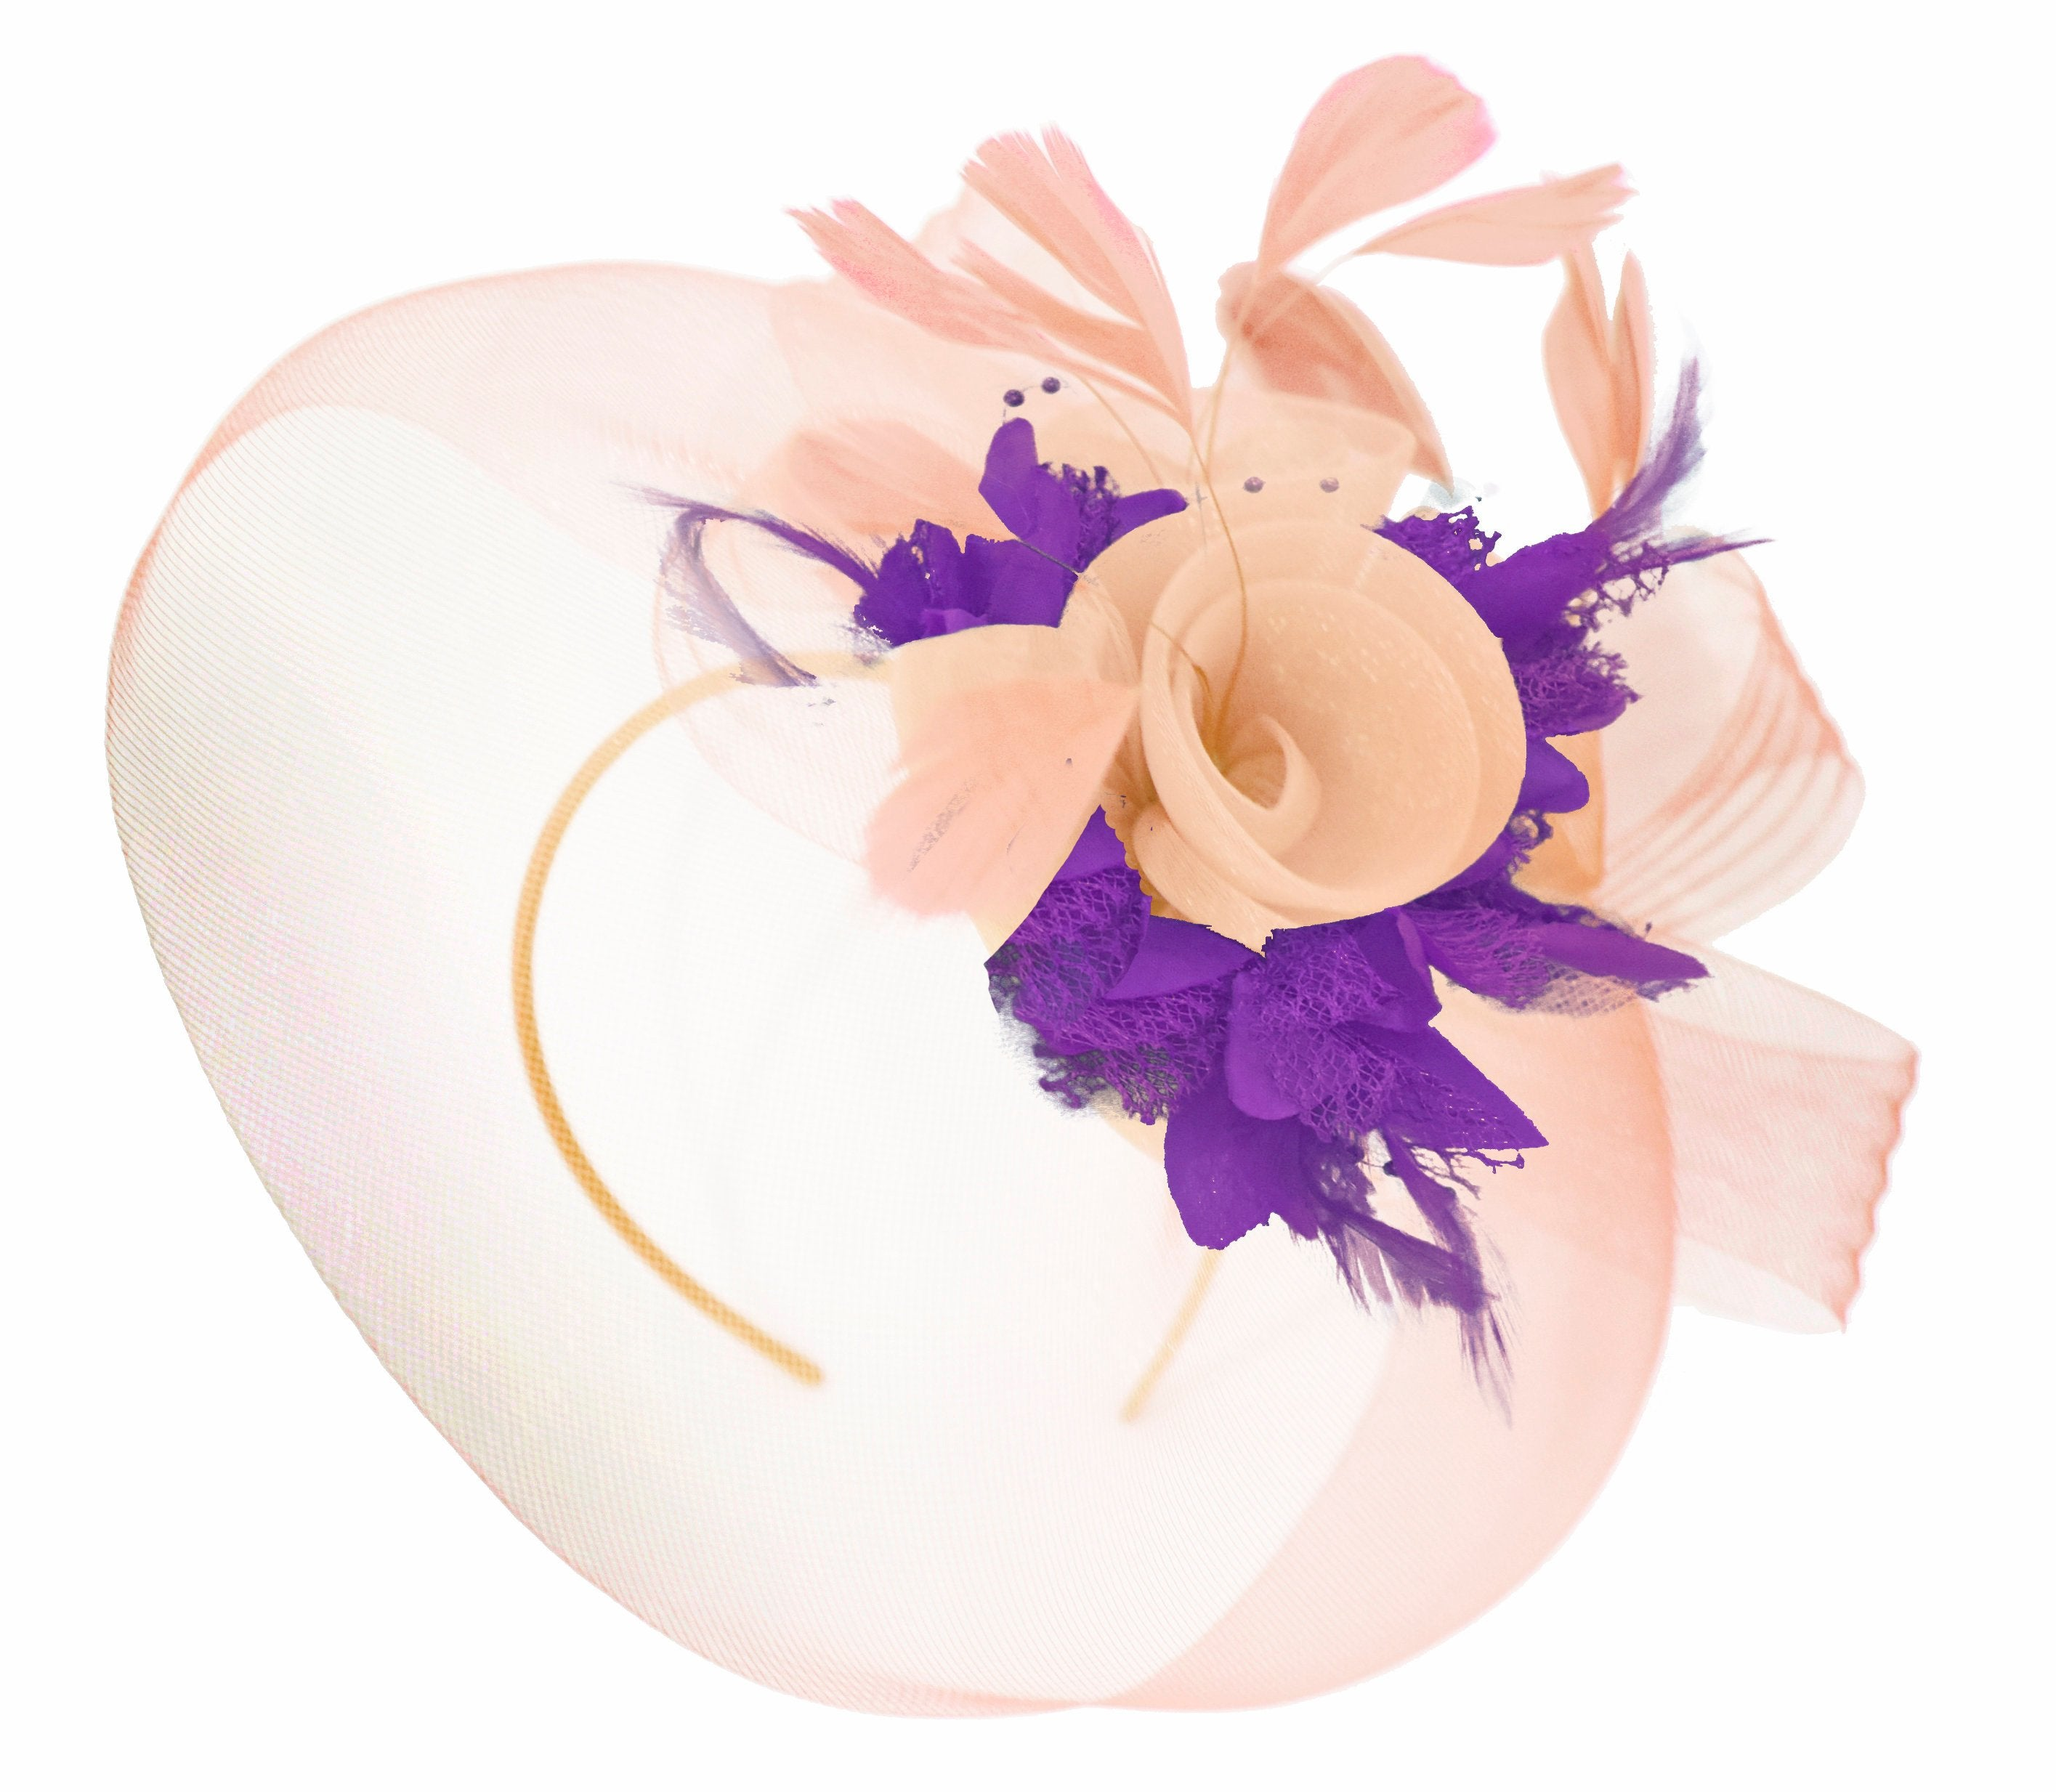 Caprilite Nude Pink Peach and Cadbury Purple Fascinator Hat Veil Net Hair Clip Ascot Derby Races Wedding Headband Feather Flower